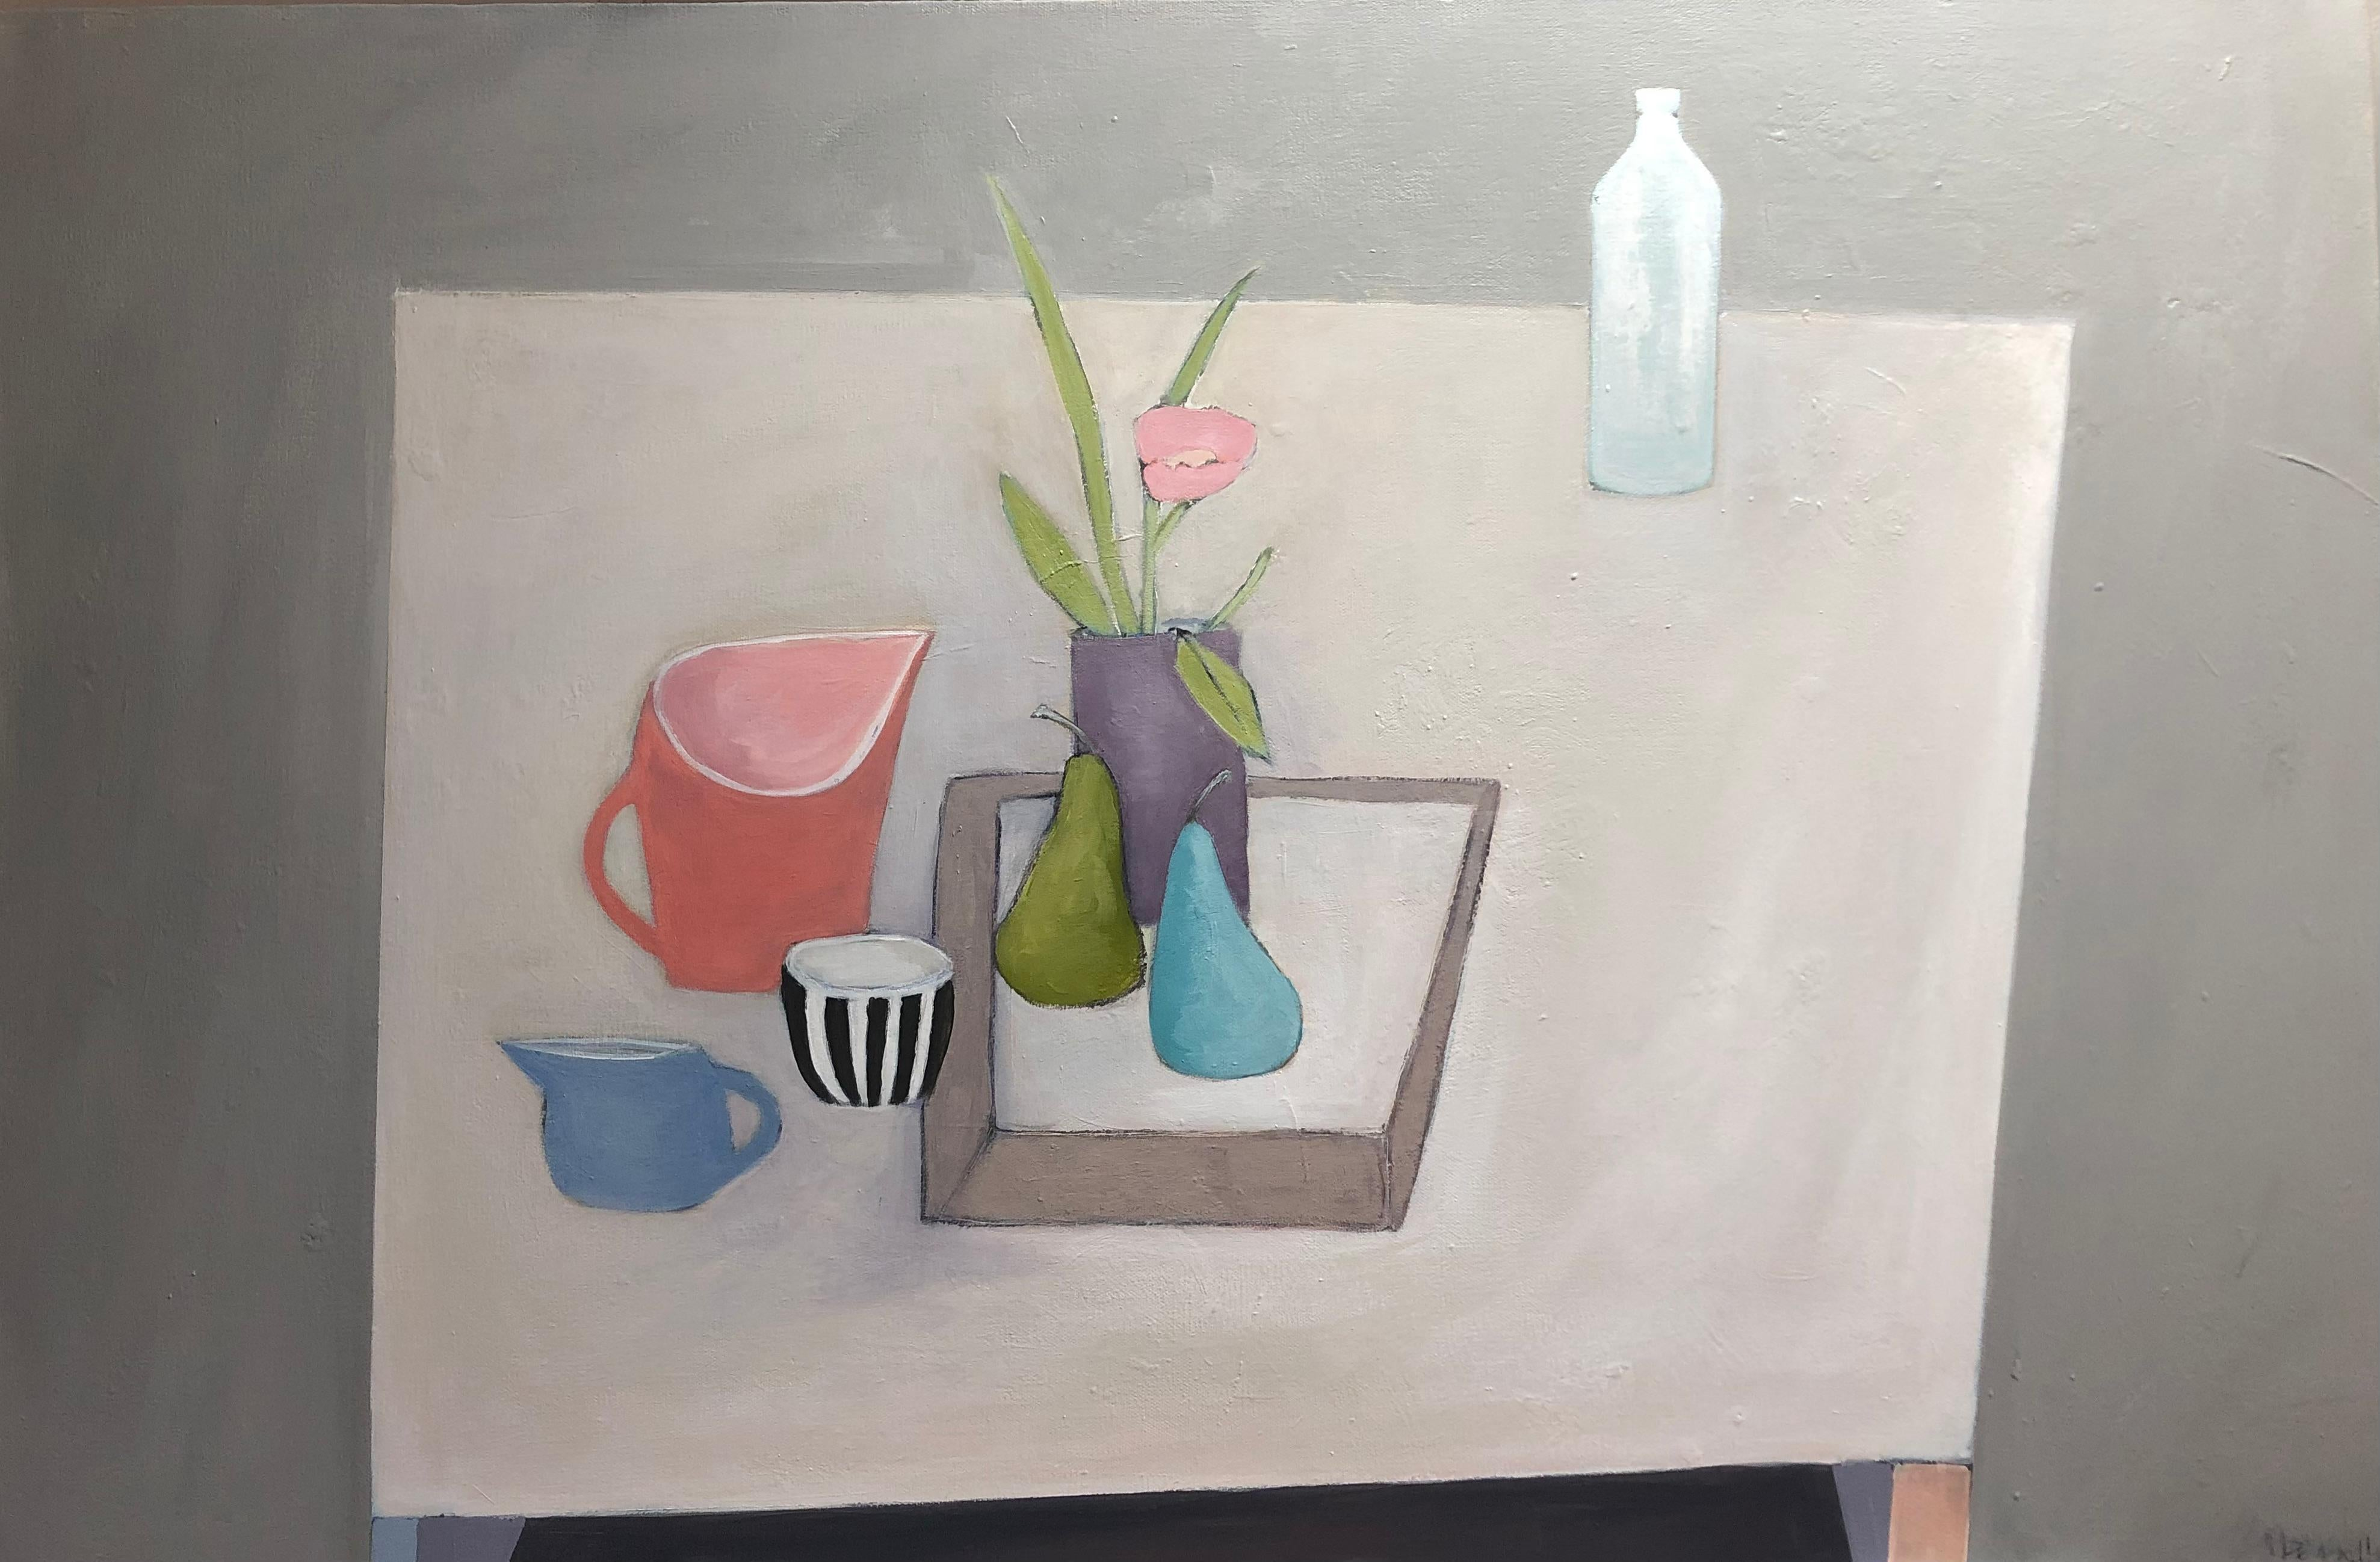 Black/White striped cup and pears - Still Life Painting